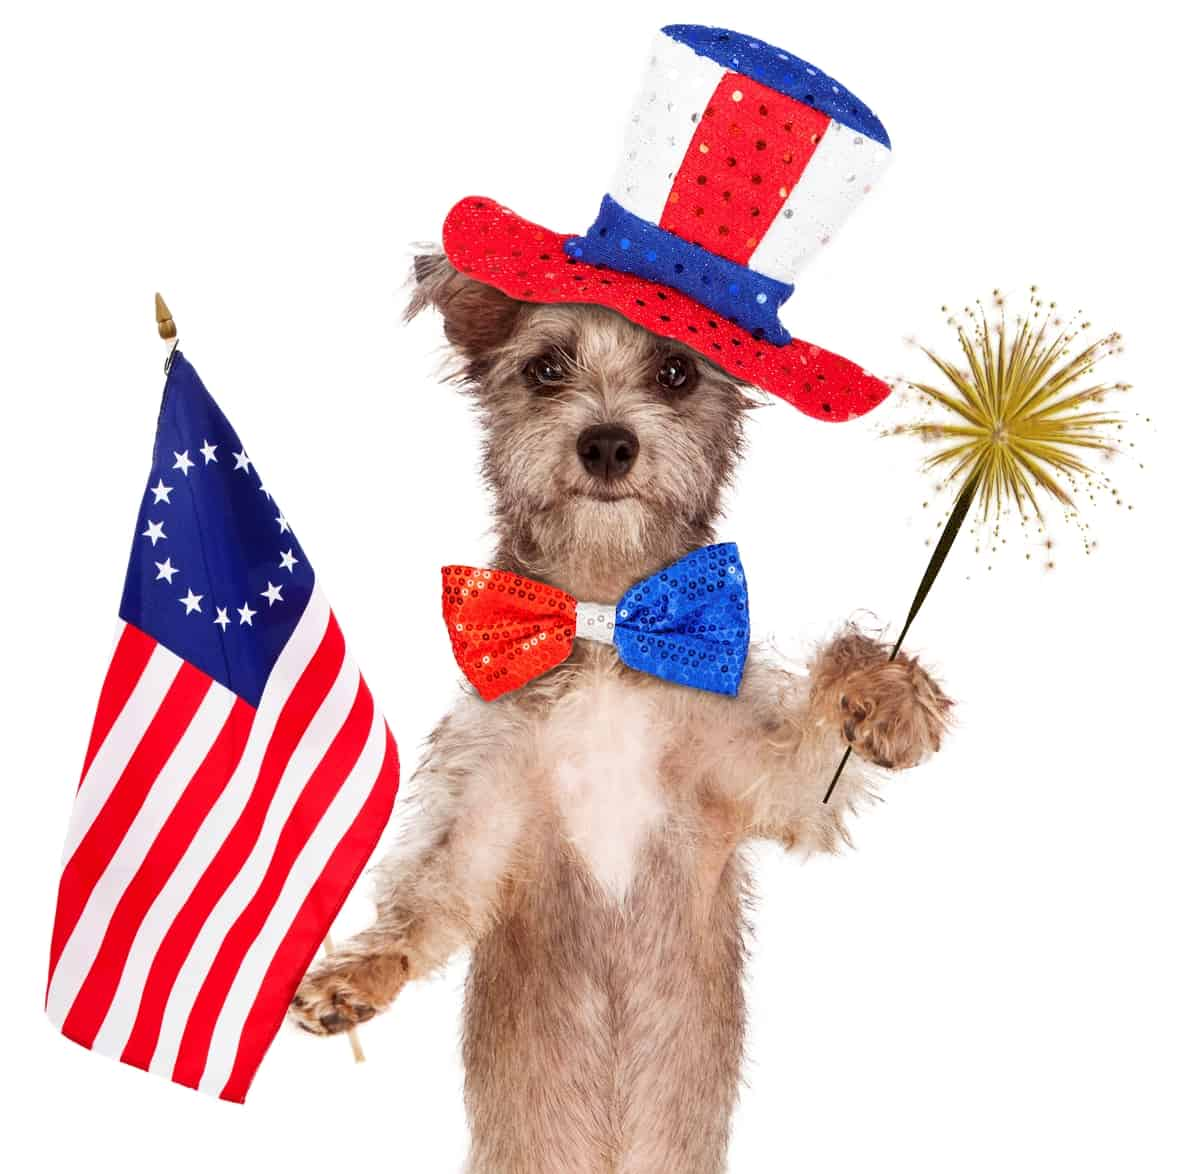 July 4th pet tips